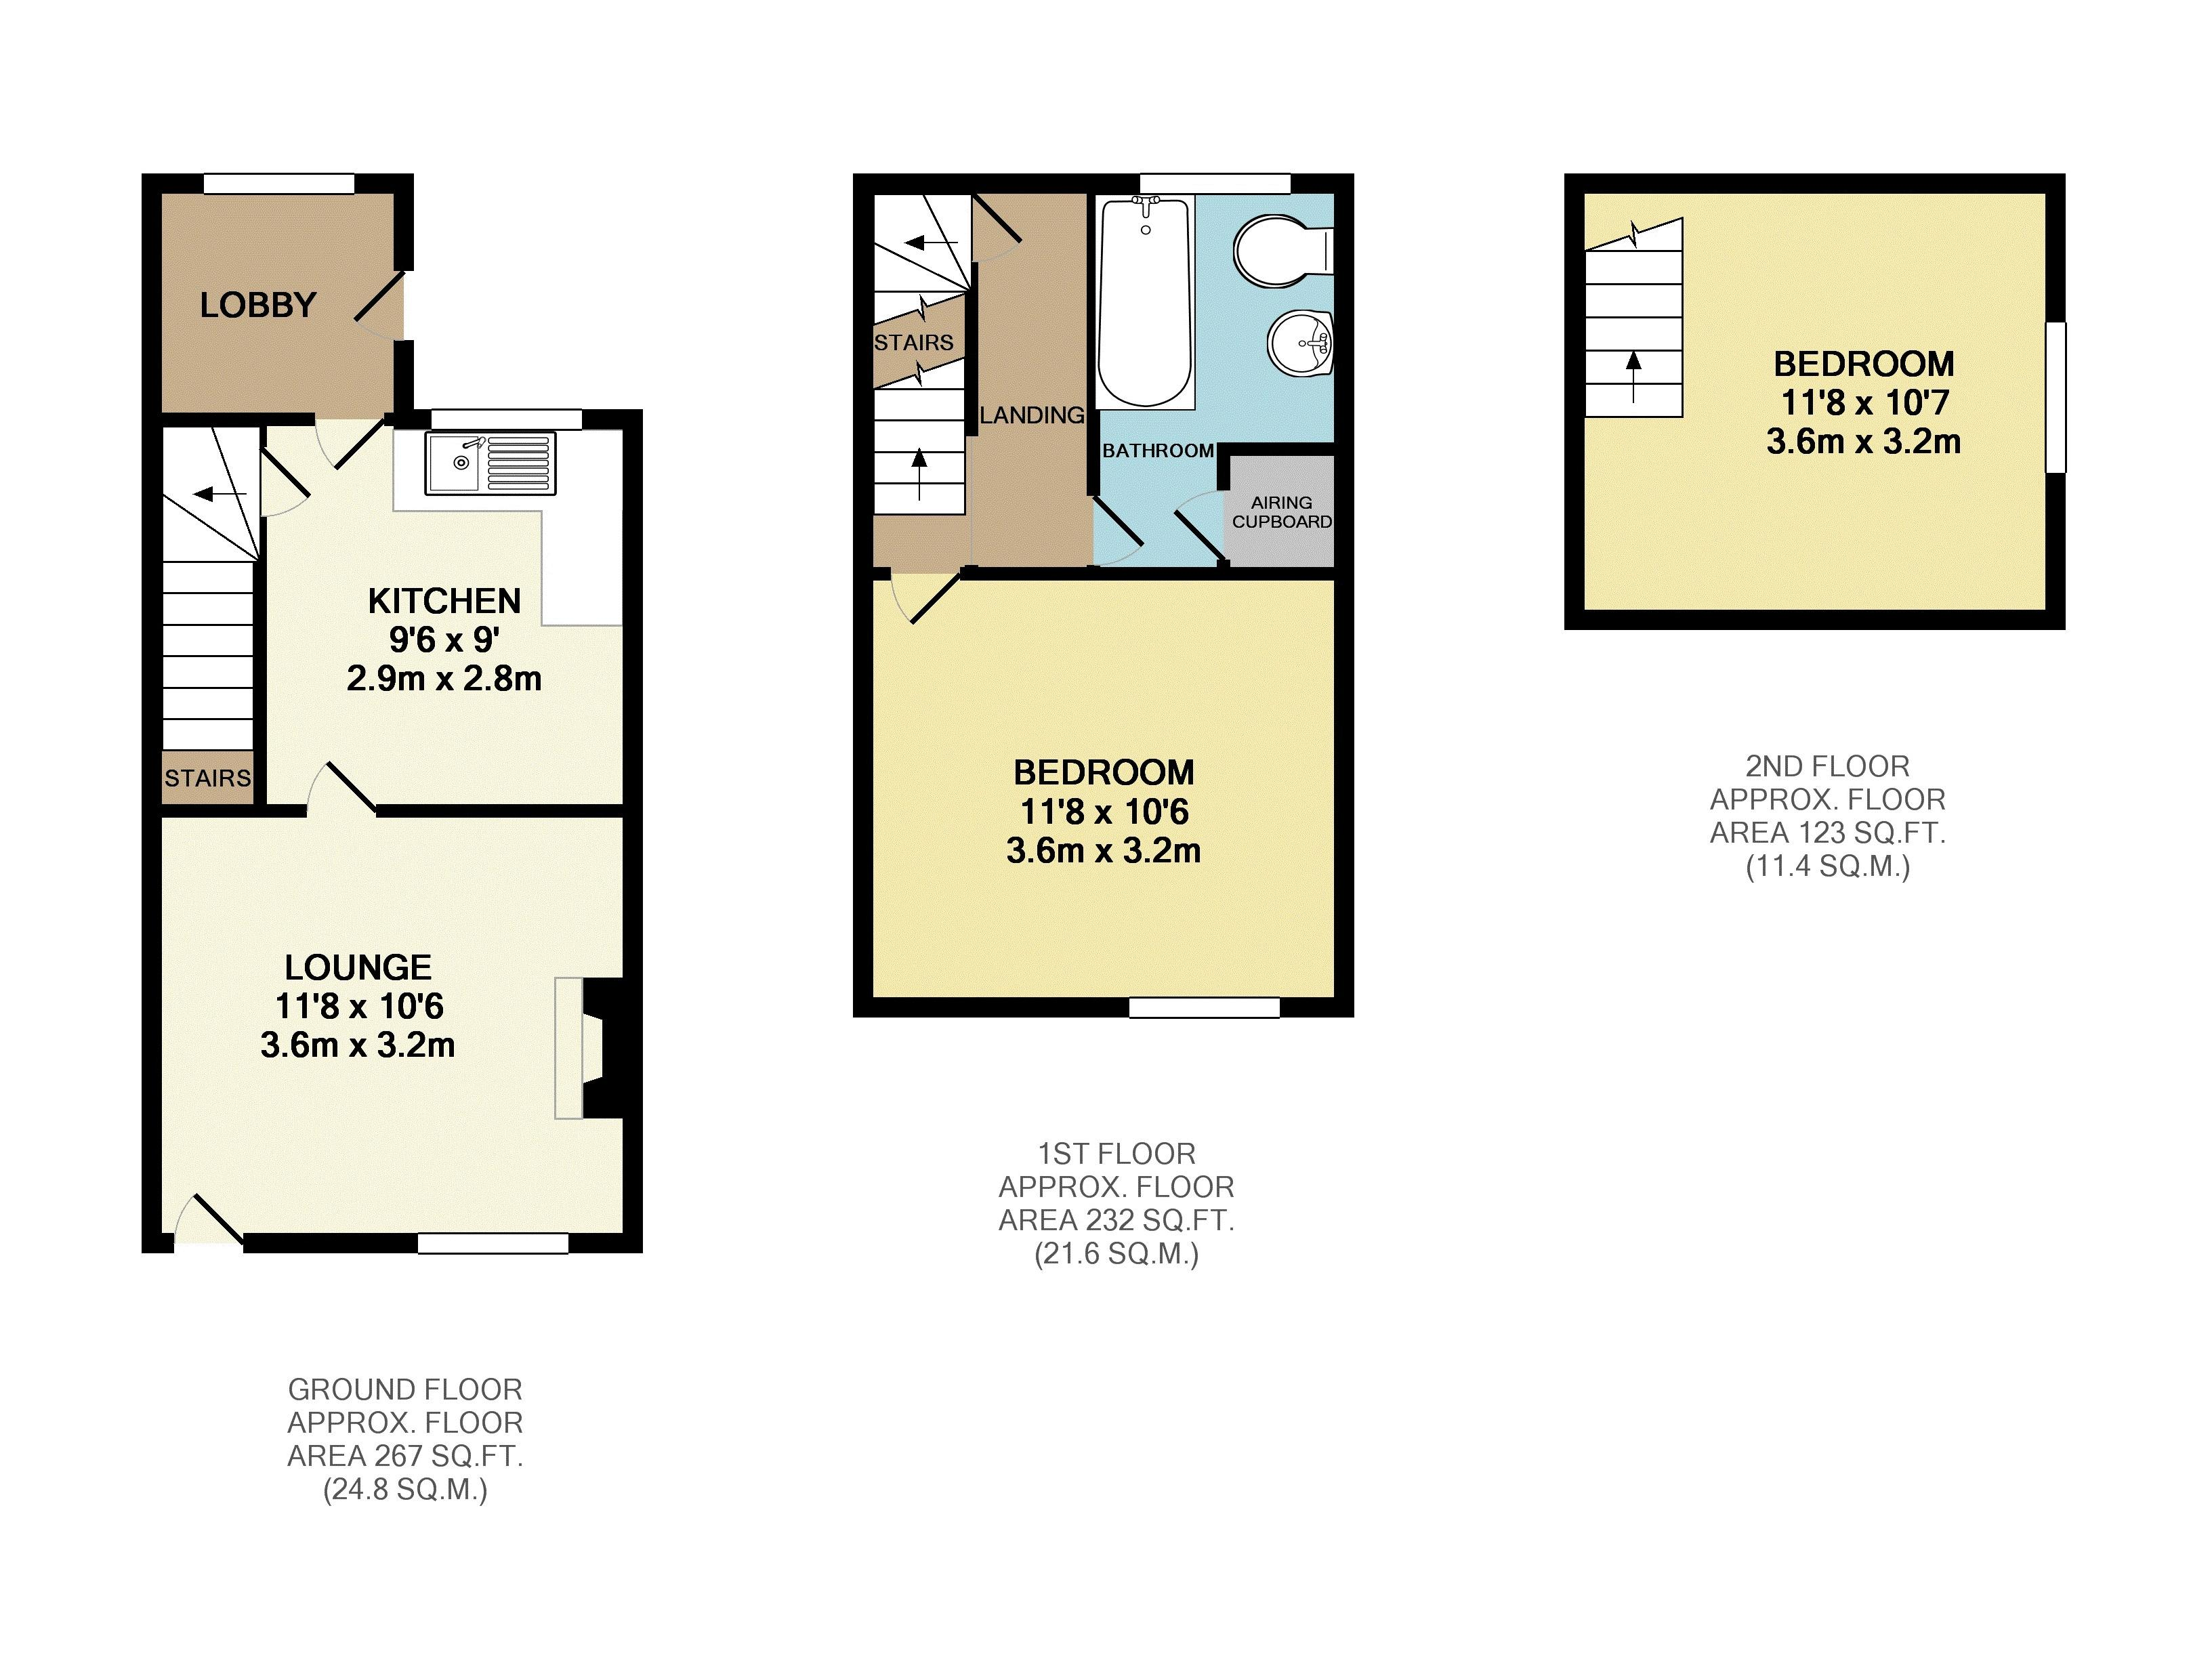 2 bedroom house for sale in ampthill for How much is a bathroom worth on an appraisal